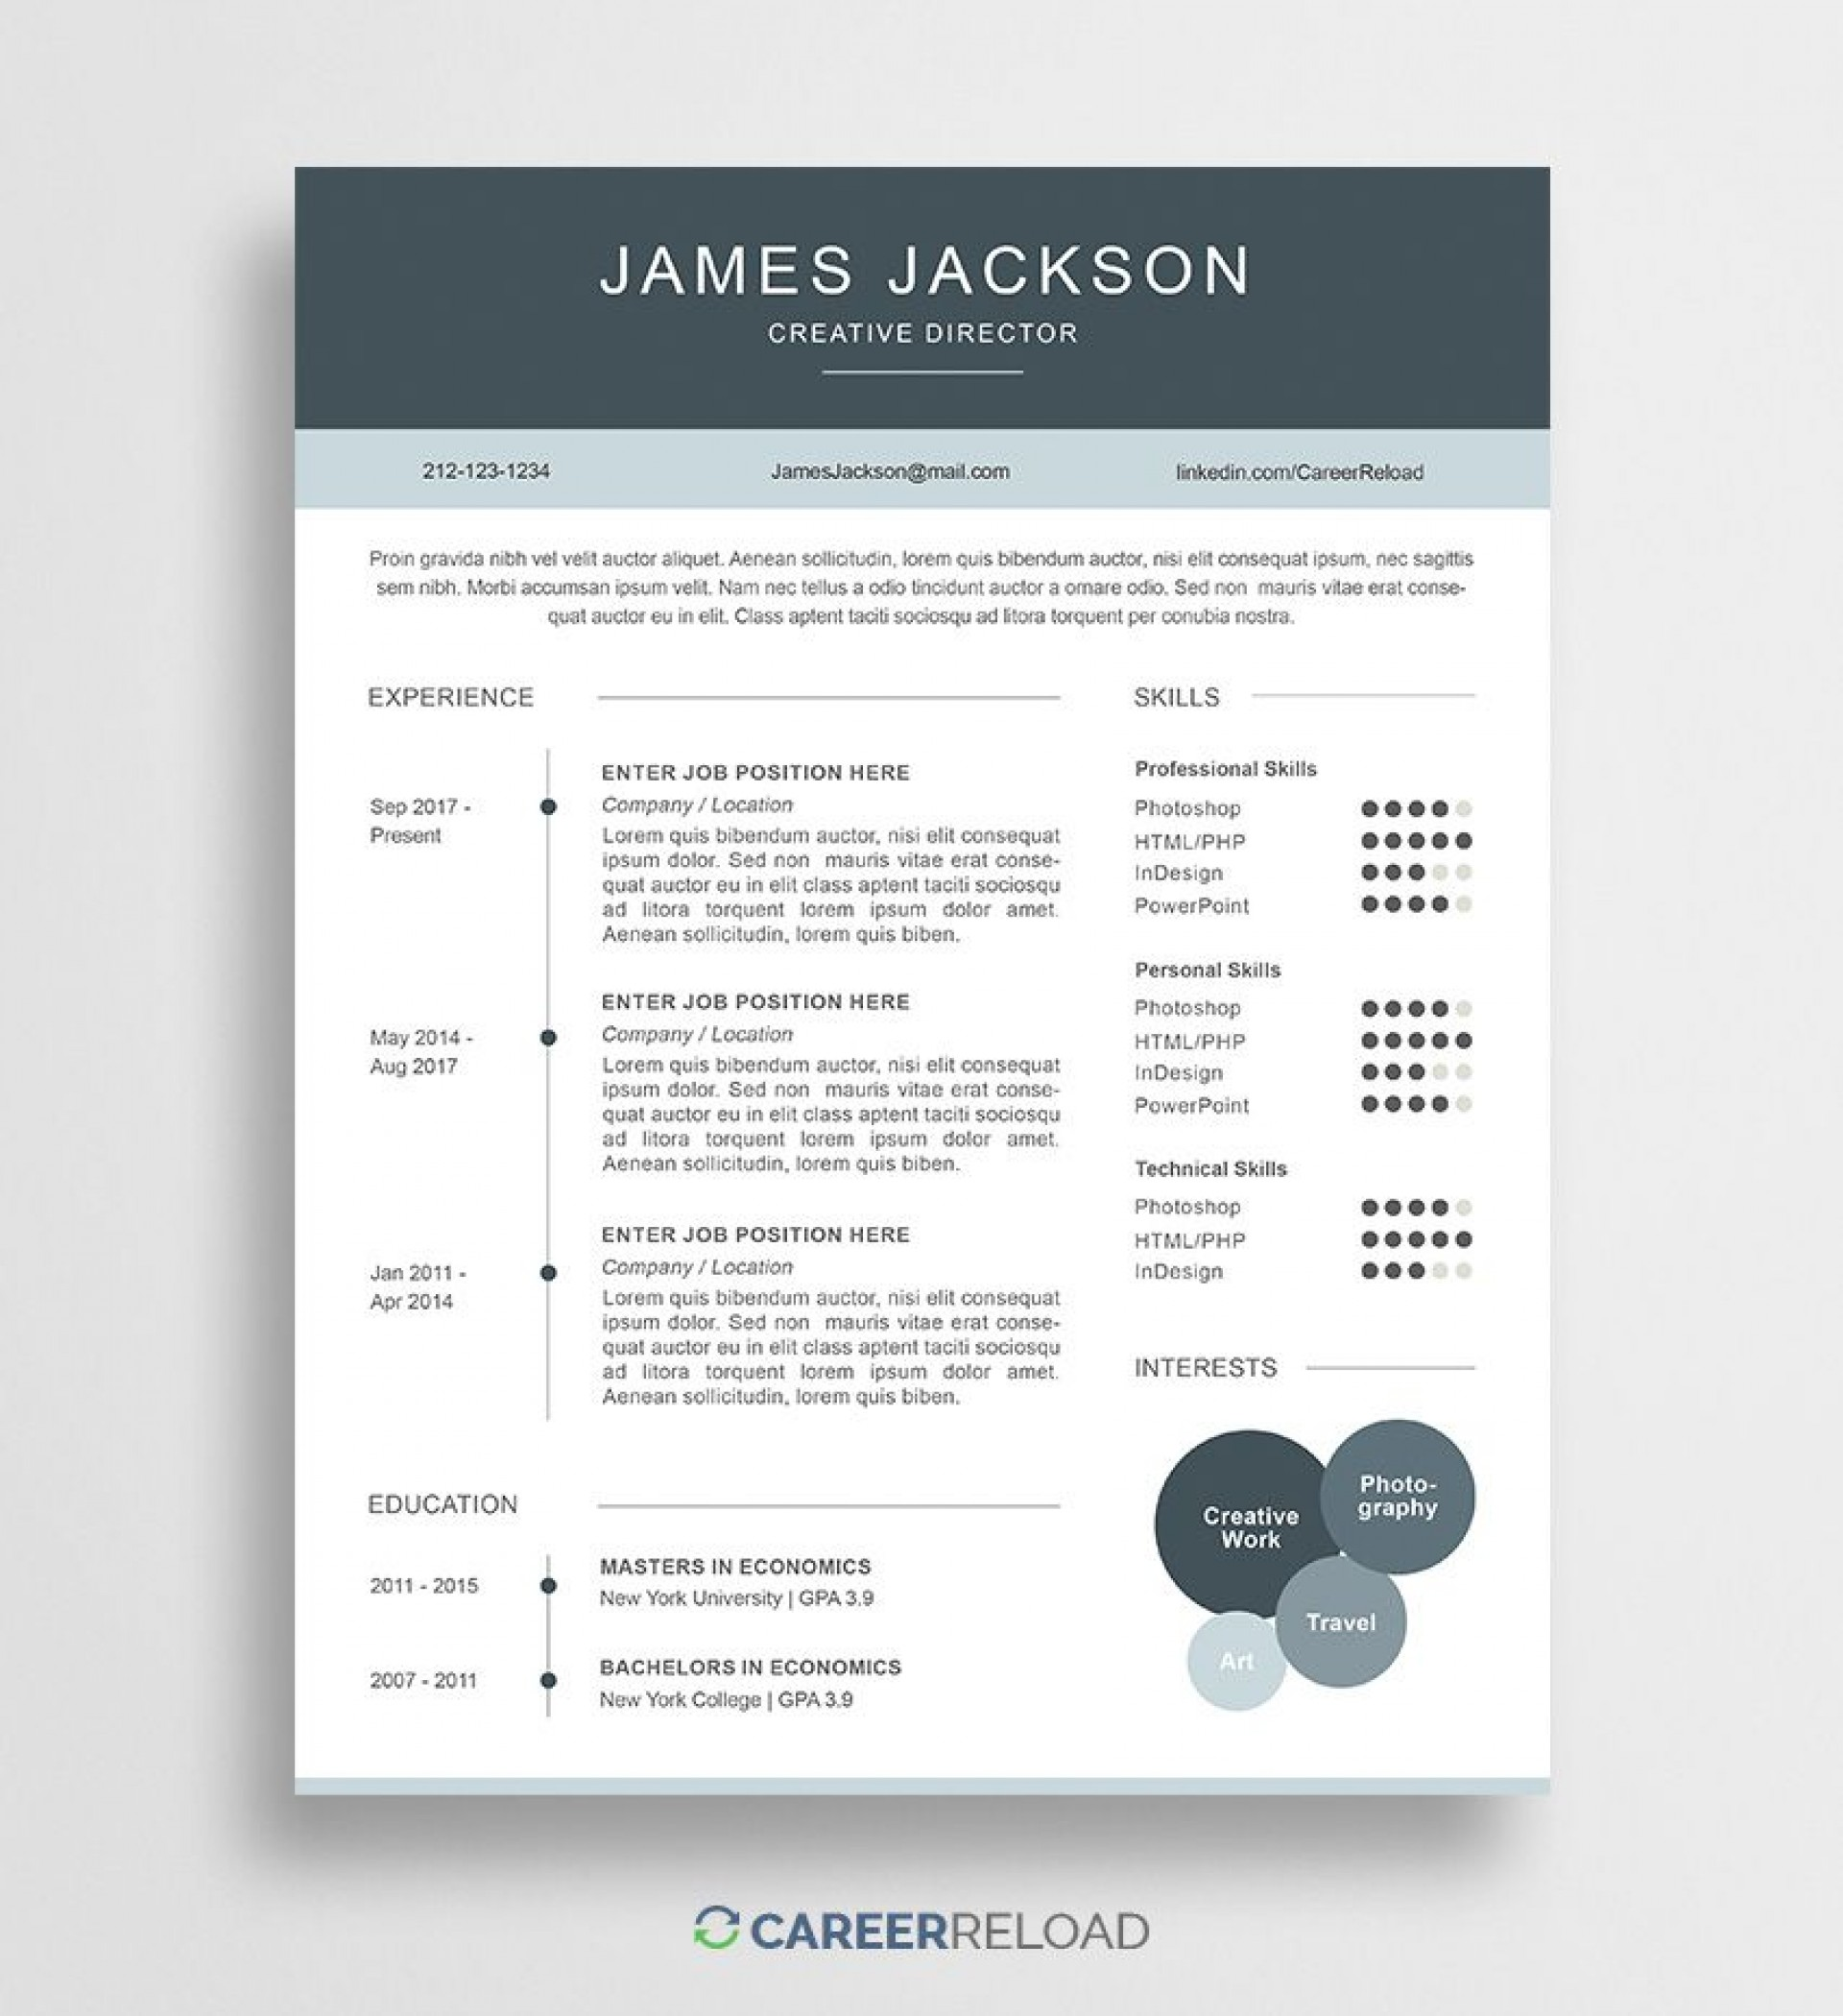 008 Formidable Photoshop Resume Template Free Download Highest Quality  Creative Cv Psd1920